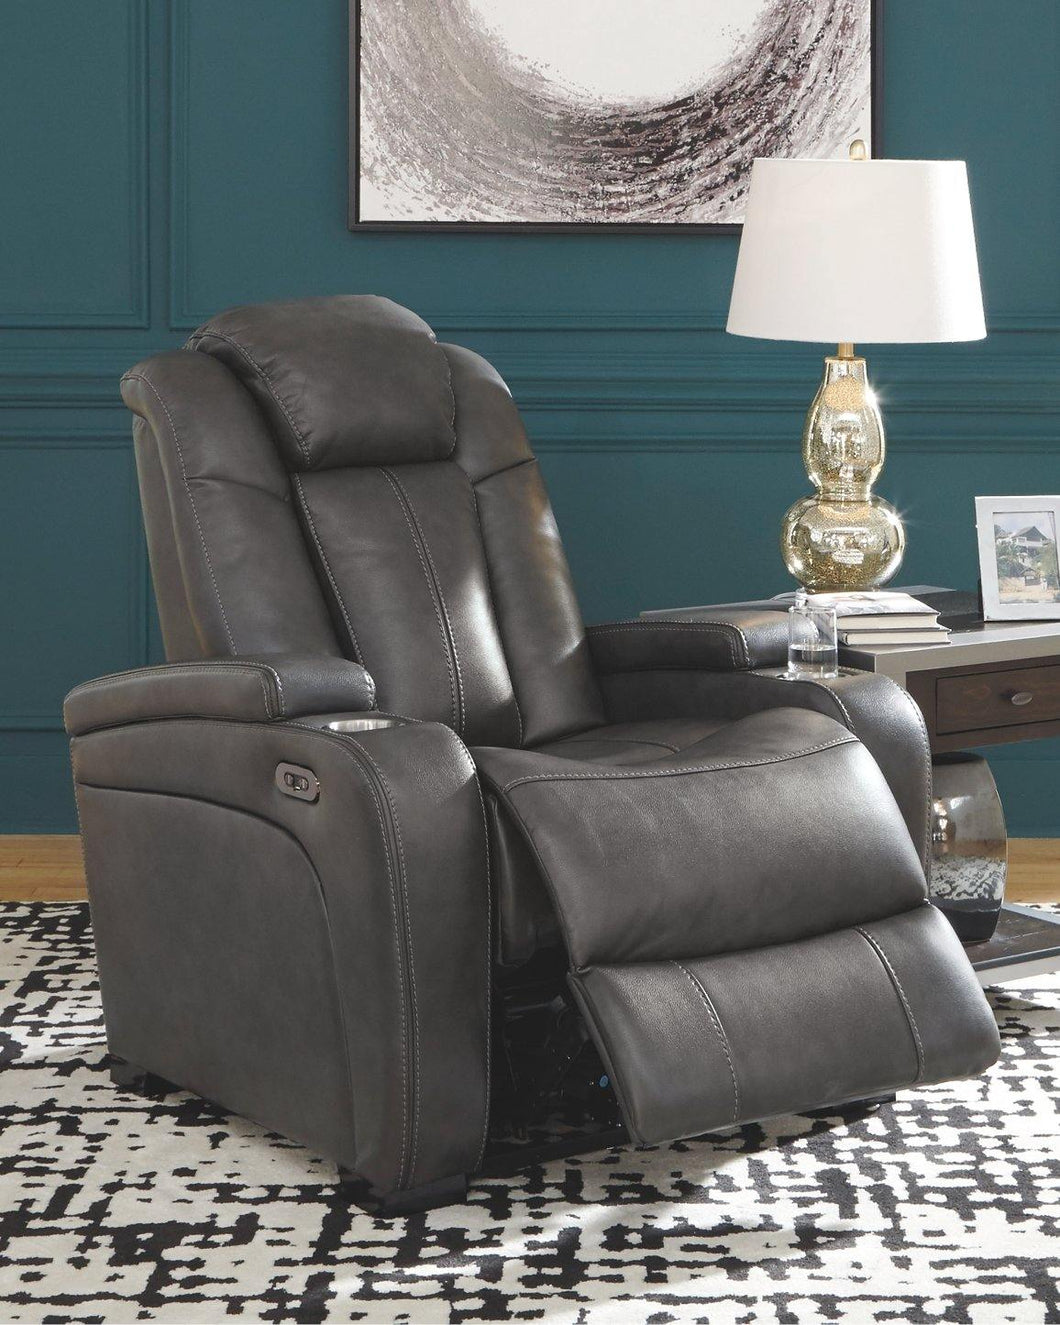 Turbulance Power Recliner 8500113 By Ashley Furniture from sofafair